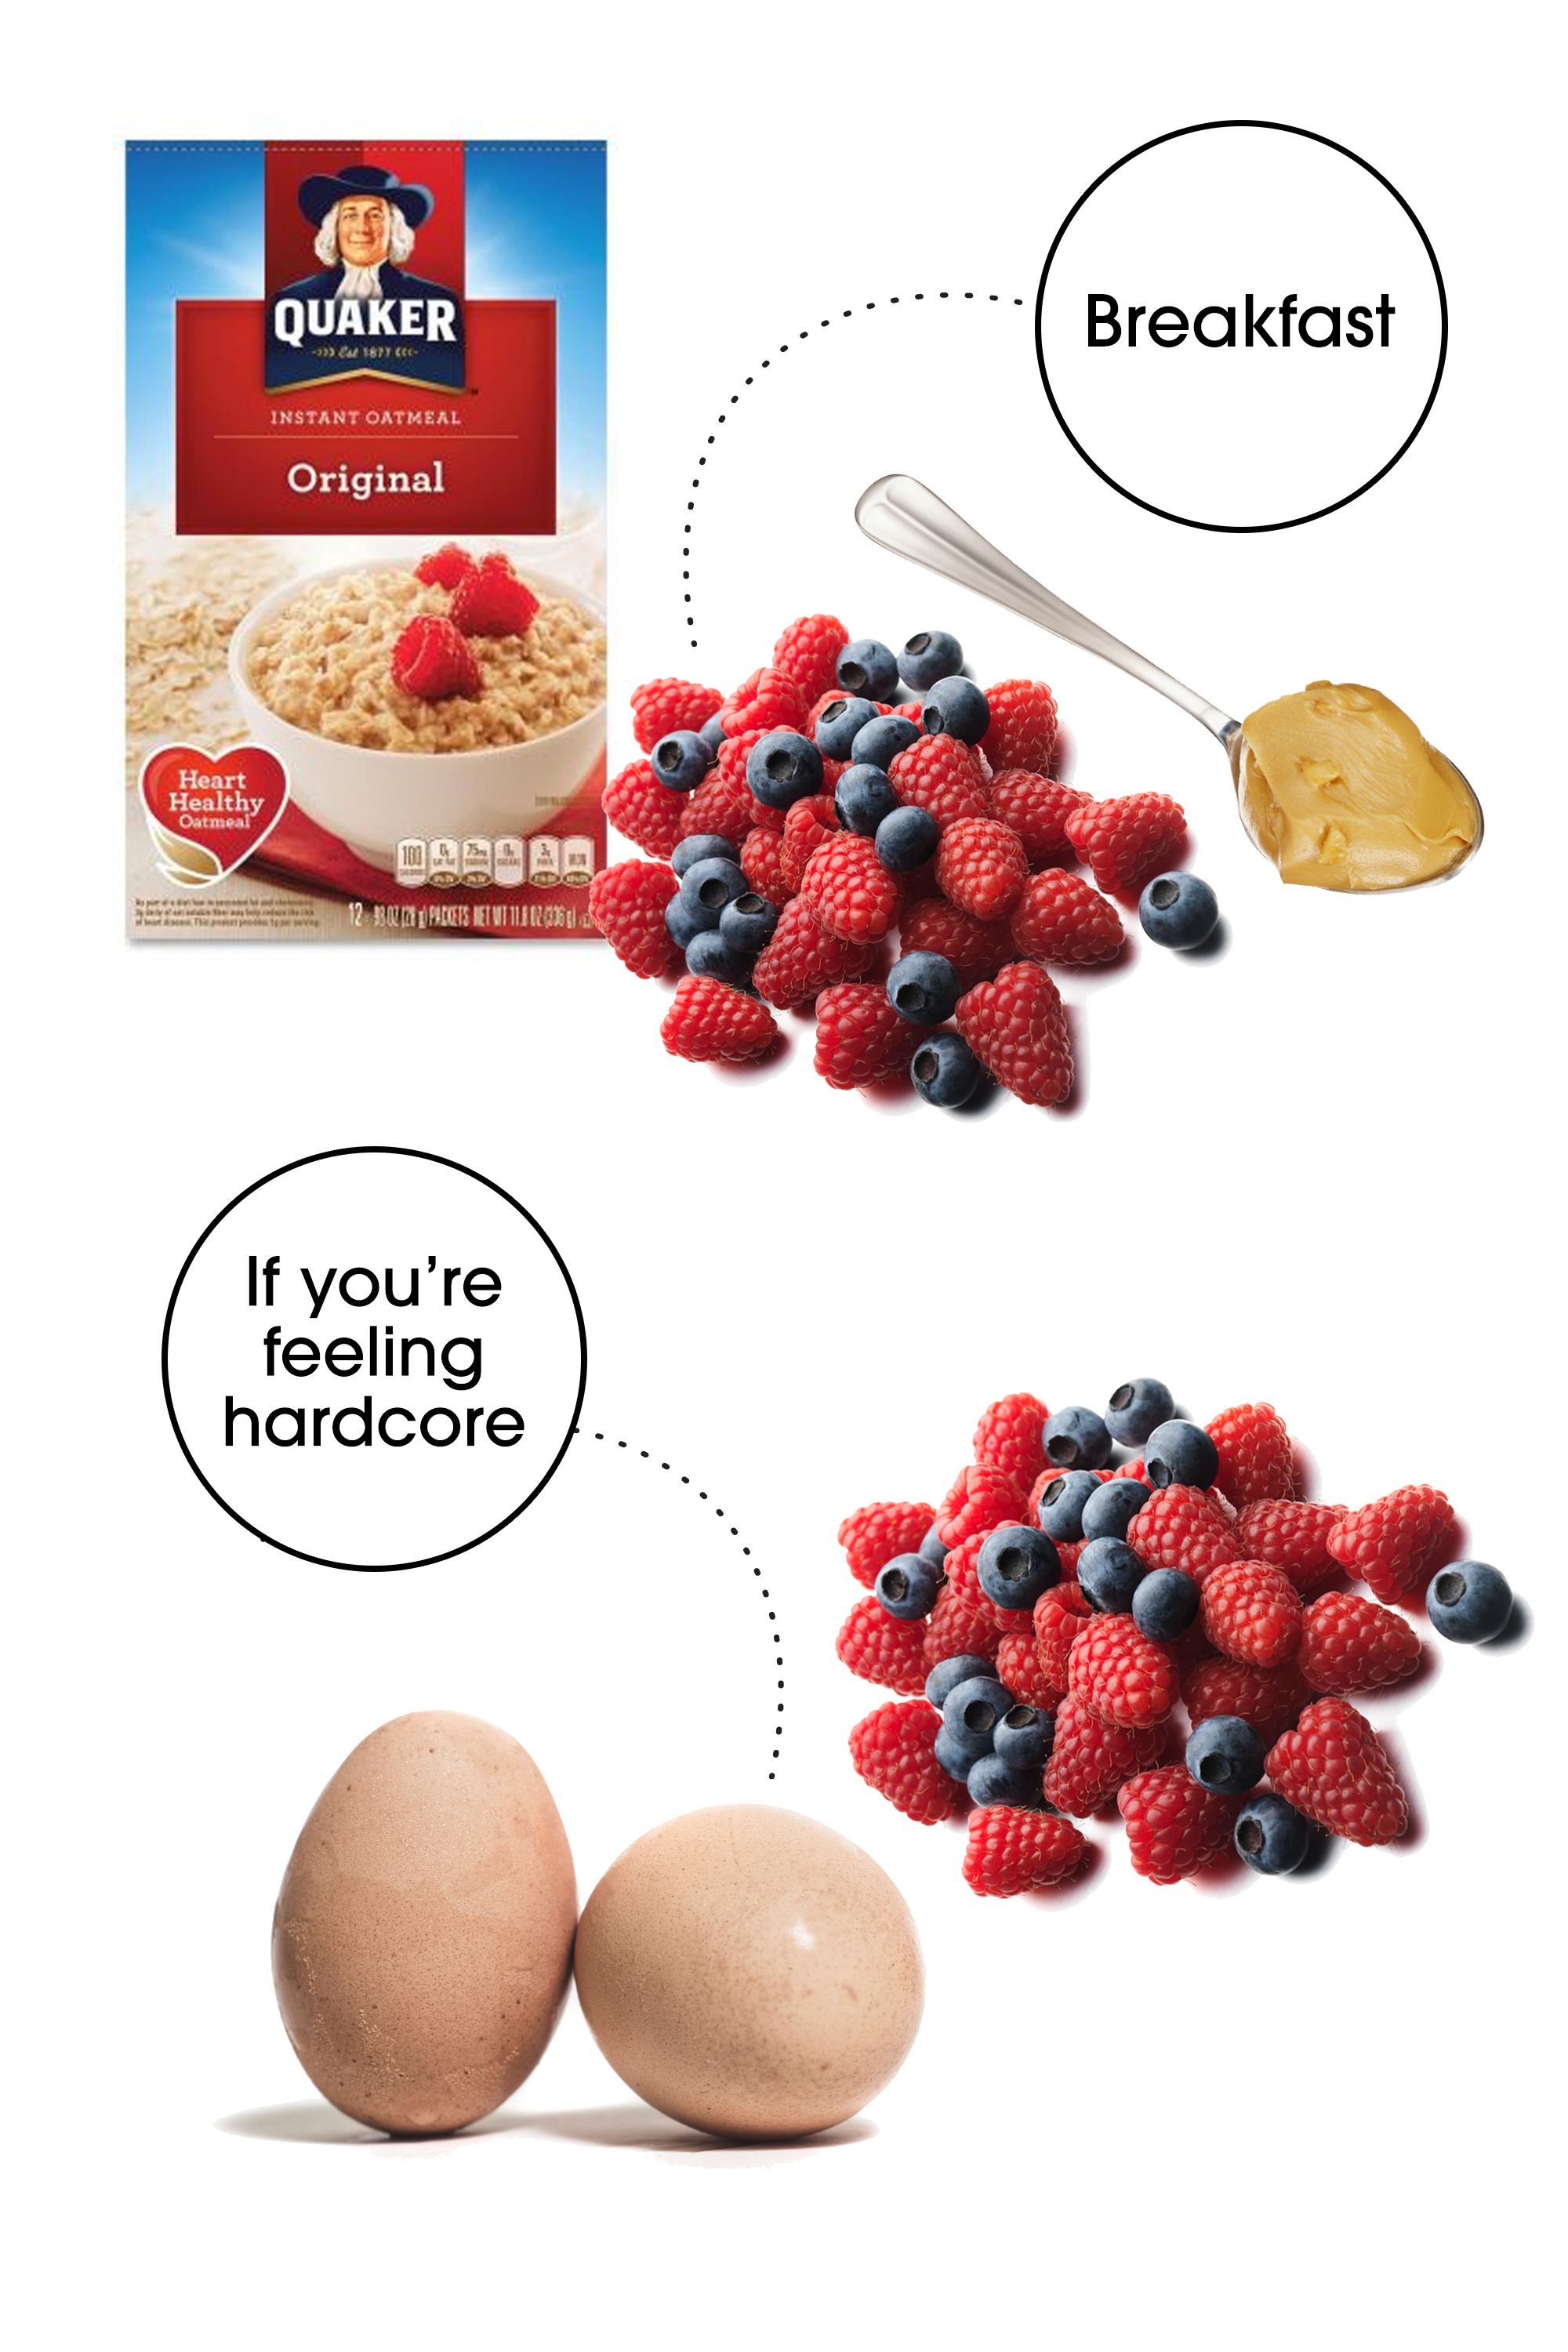 <em>1 packet of instant oatmeal with 1 cup of berries and 2 tsp peanut butter</em>